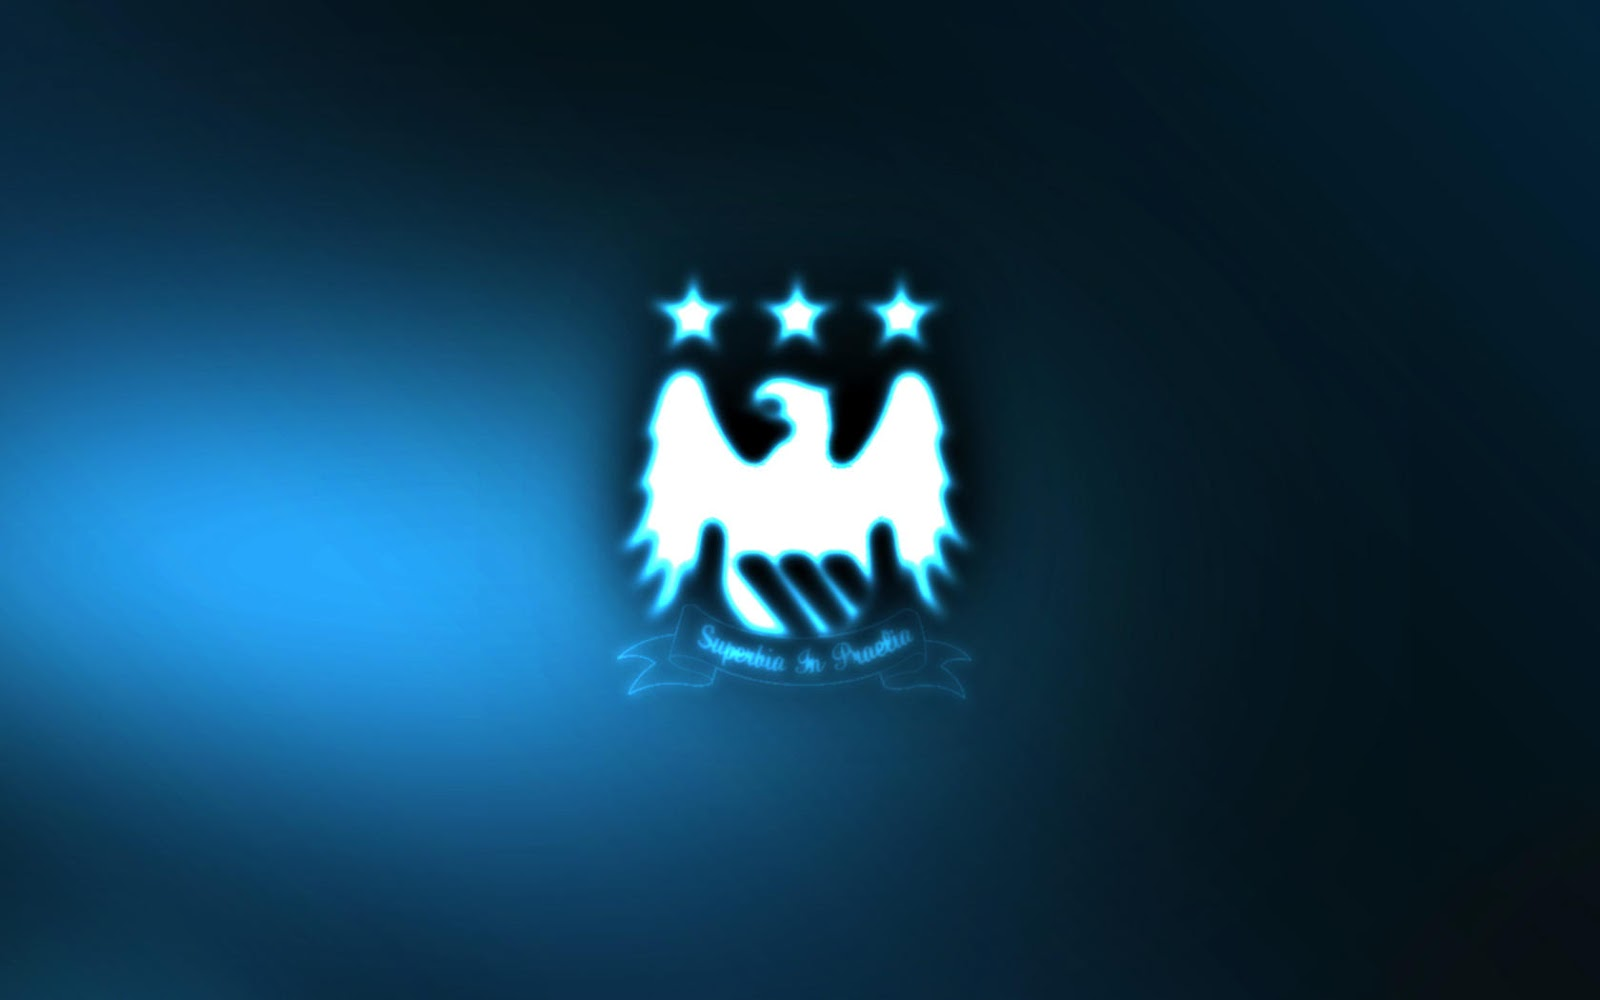 Manchester City Logo Wallpapers HD Collection Download 1600x1000